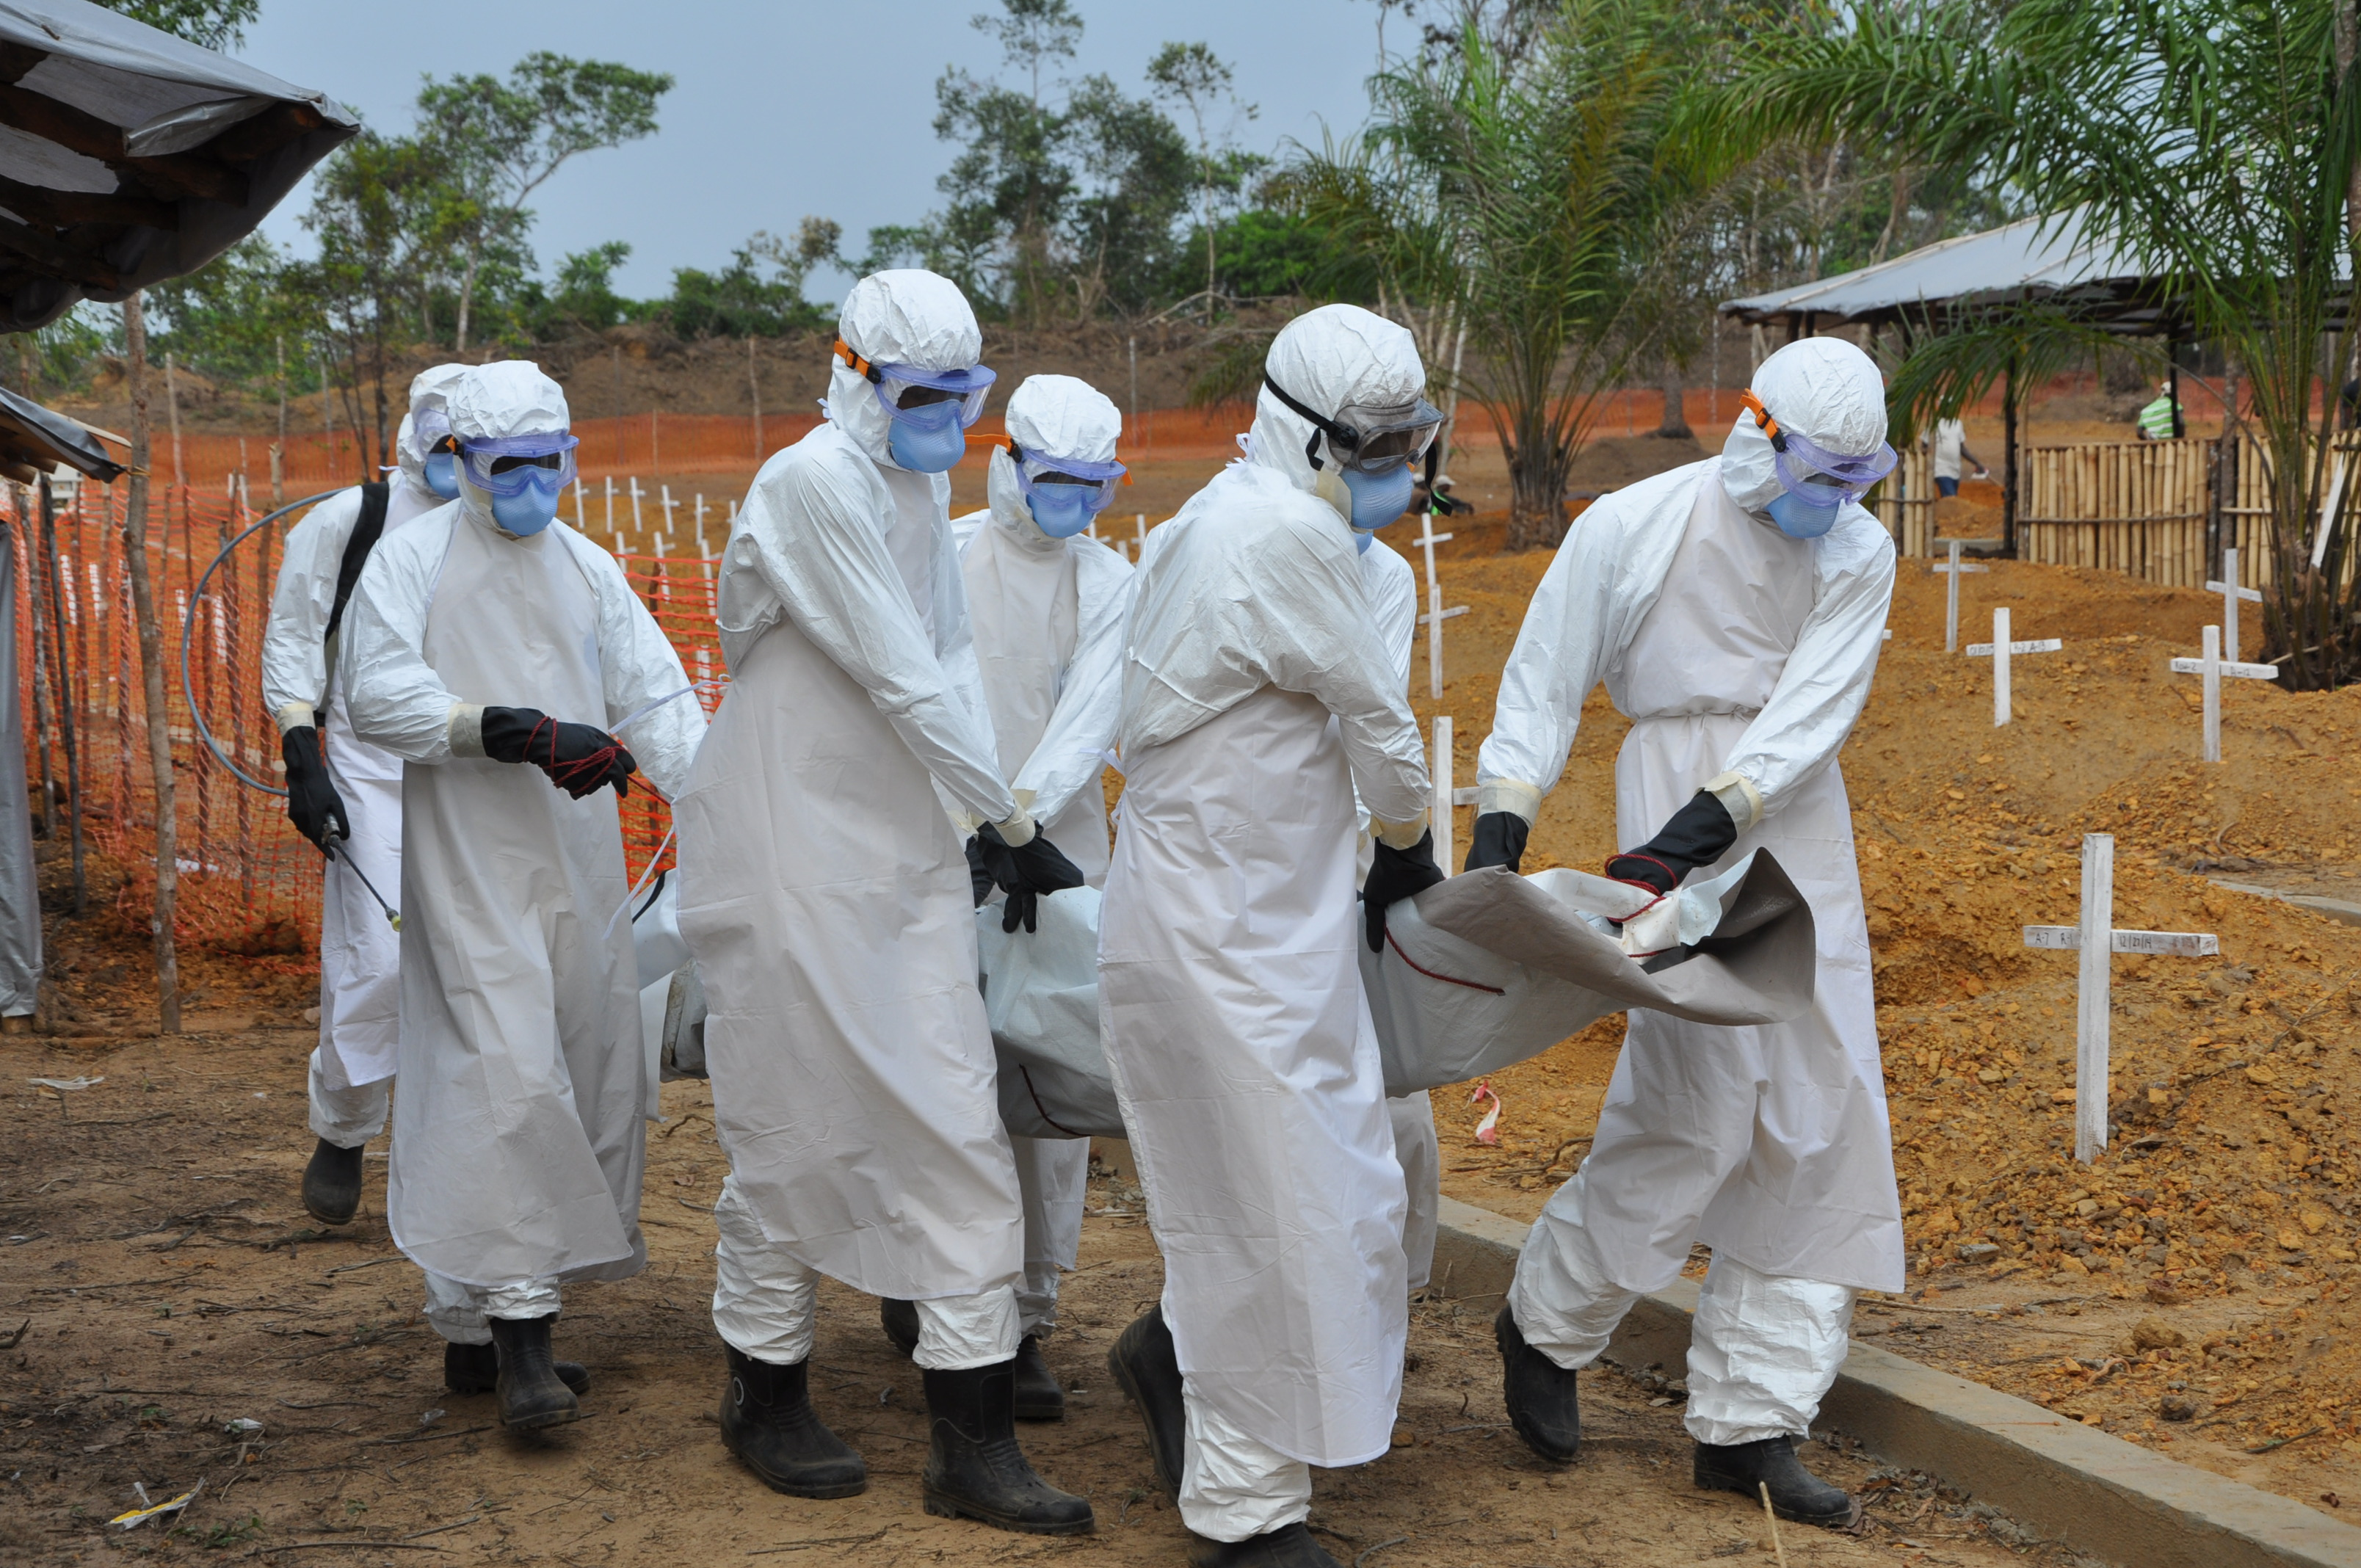 The burial team carries the body to its final resting place. (c)UNICEF/Liberia/2015/Ryeng